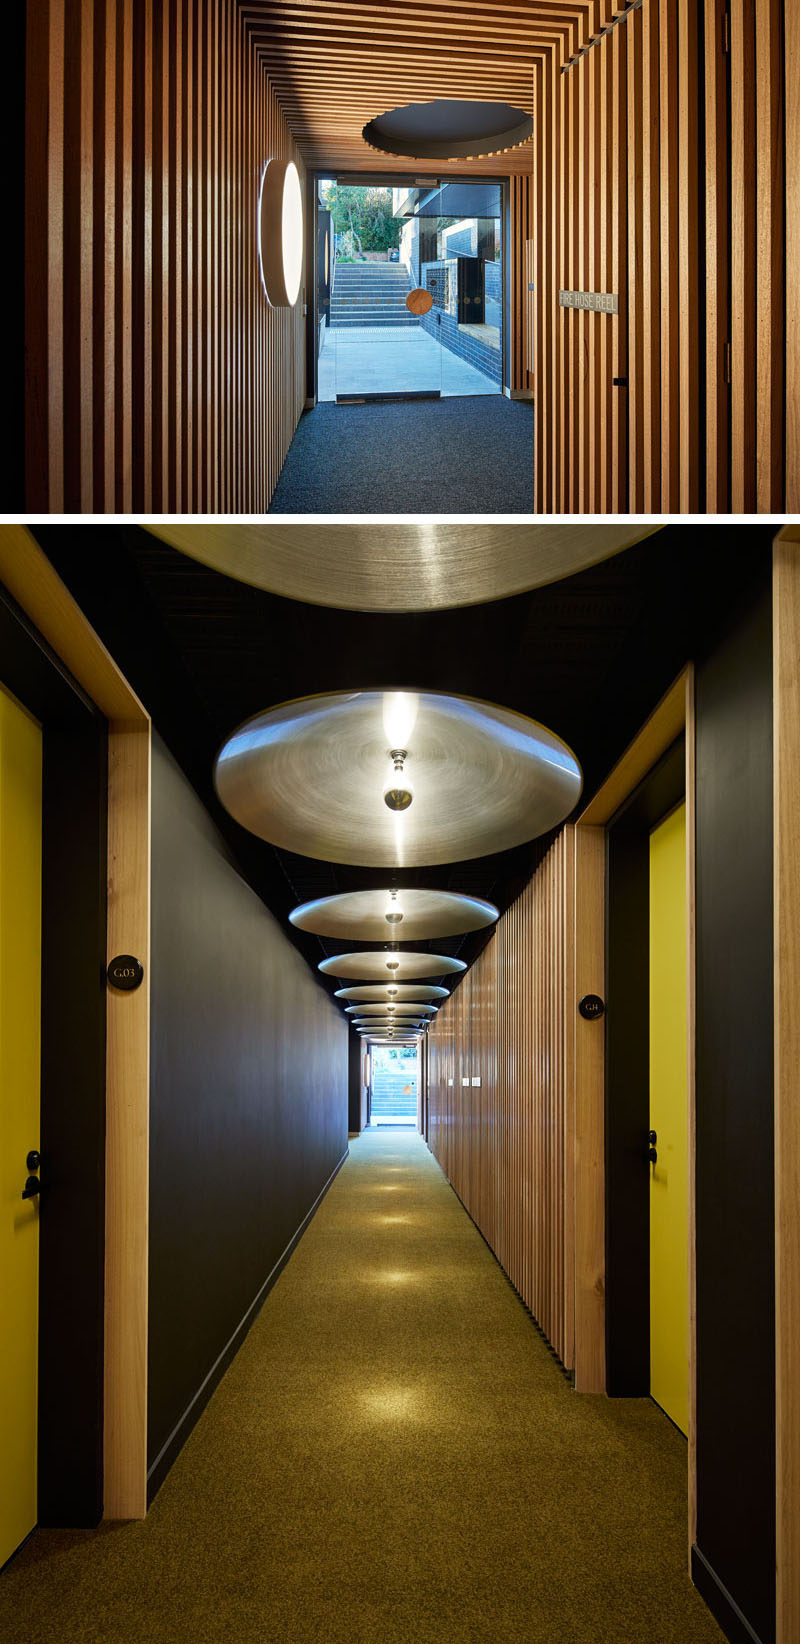 Inside this modern apartment building's entrance are wooden slats that cover the walls and ceiling, while circular elements can be found throughout the interior, like in the hallway, where the designers have used discs mounted to the ceiling to reflect the light of single bulbs. #Lobby #Hallway #WoodSlats #ModernLighting